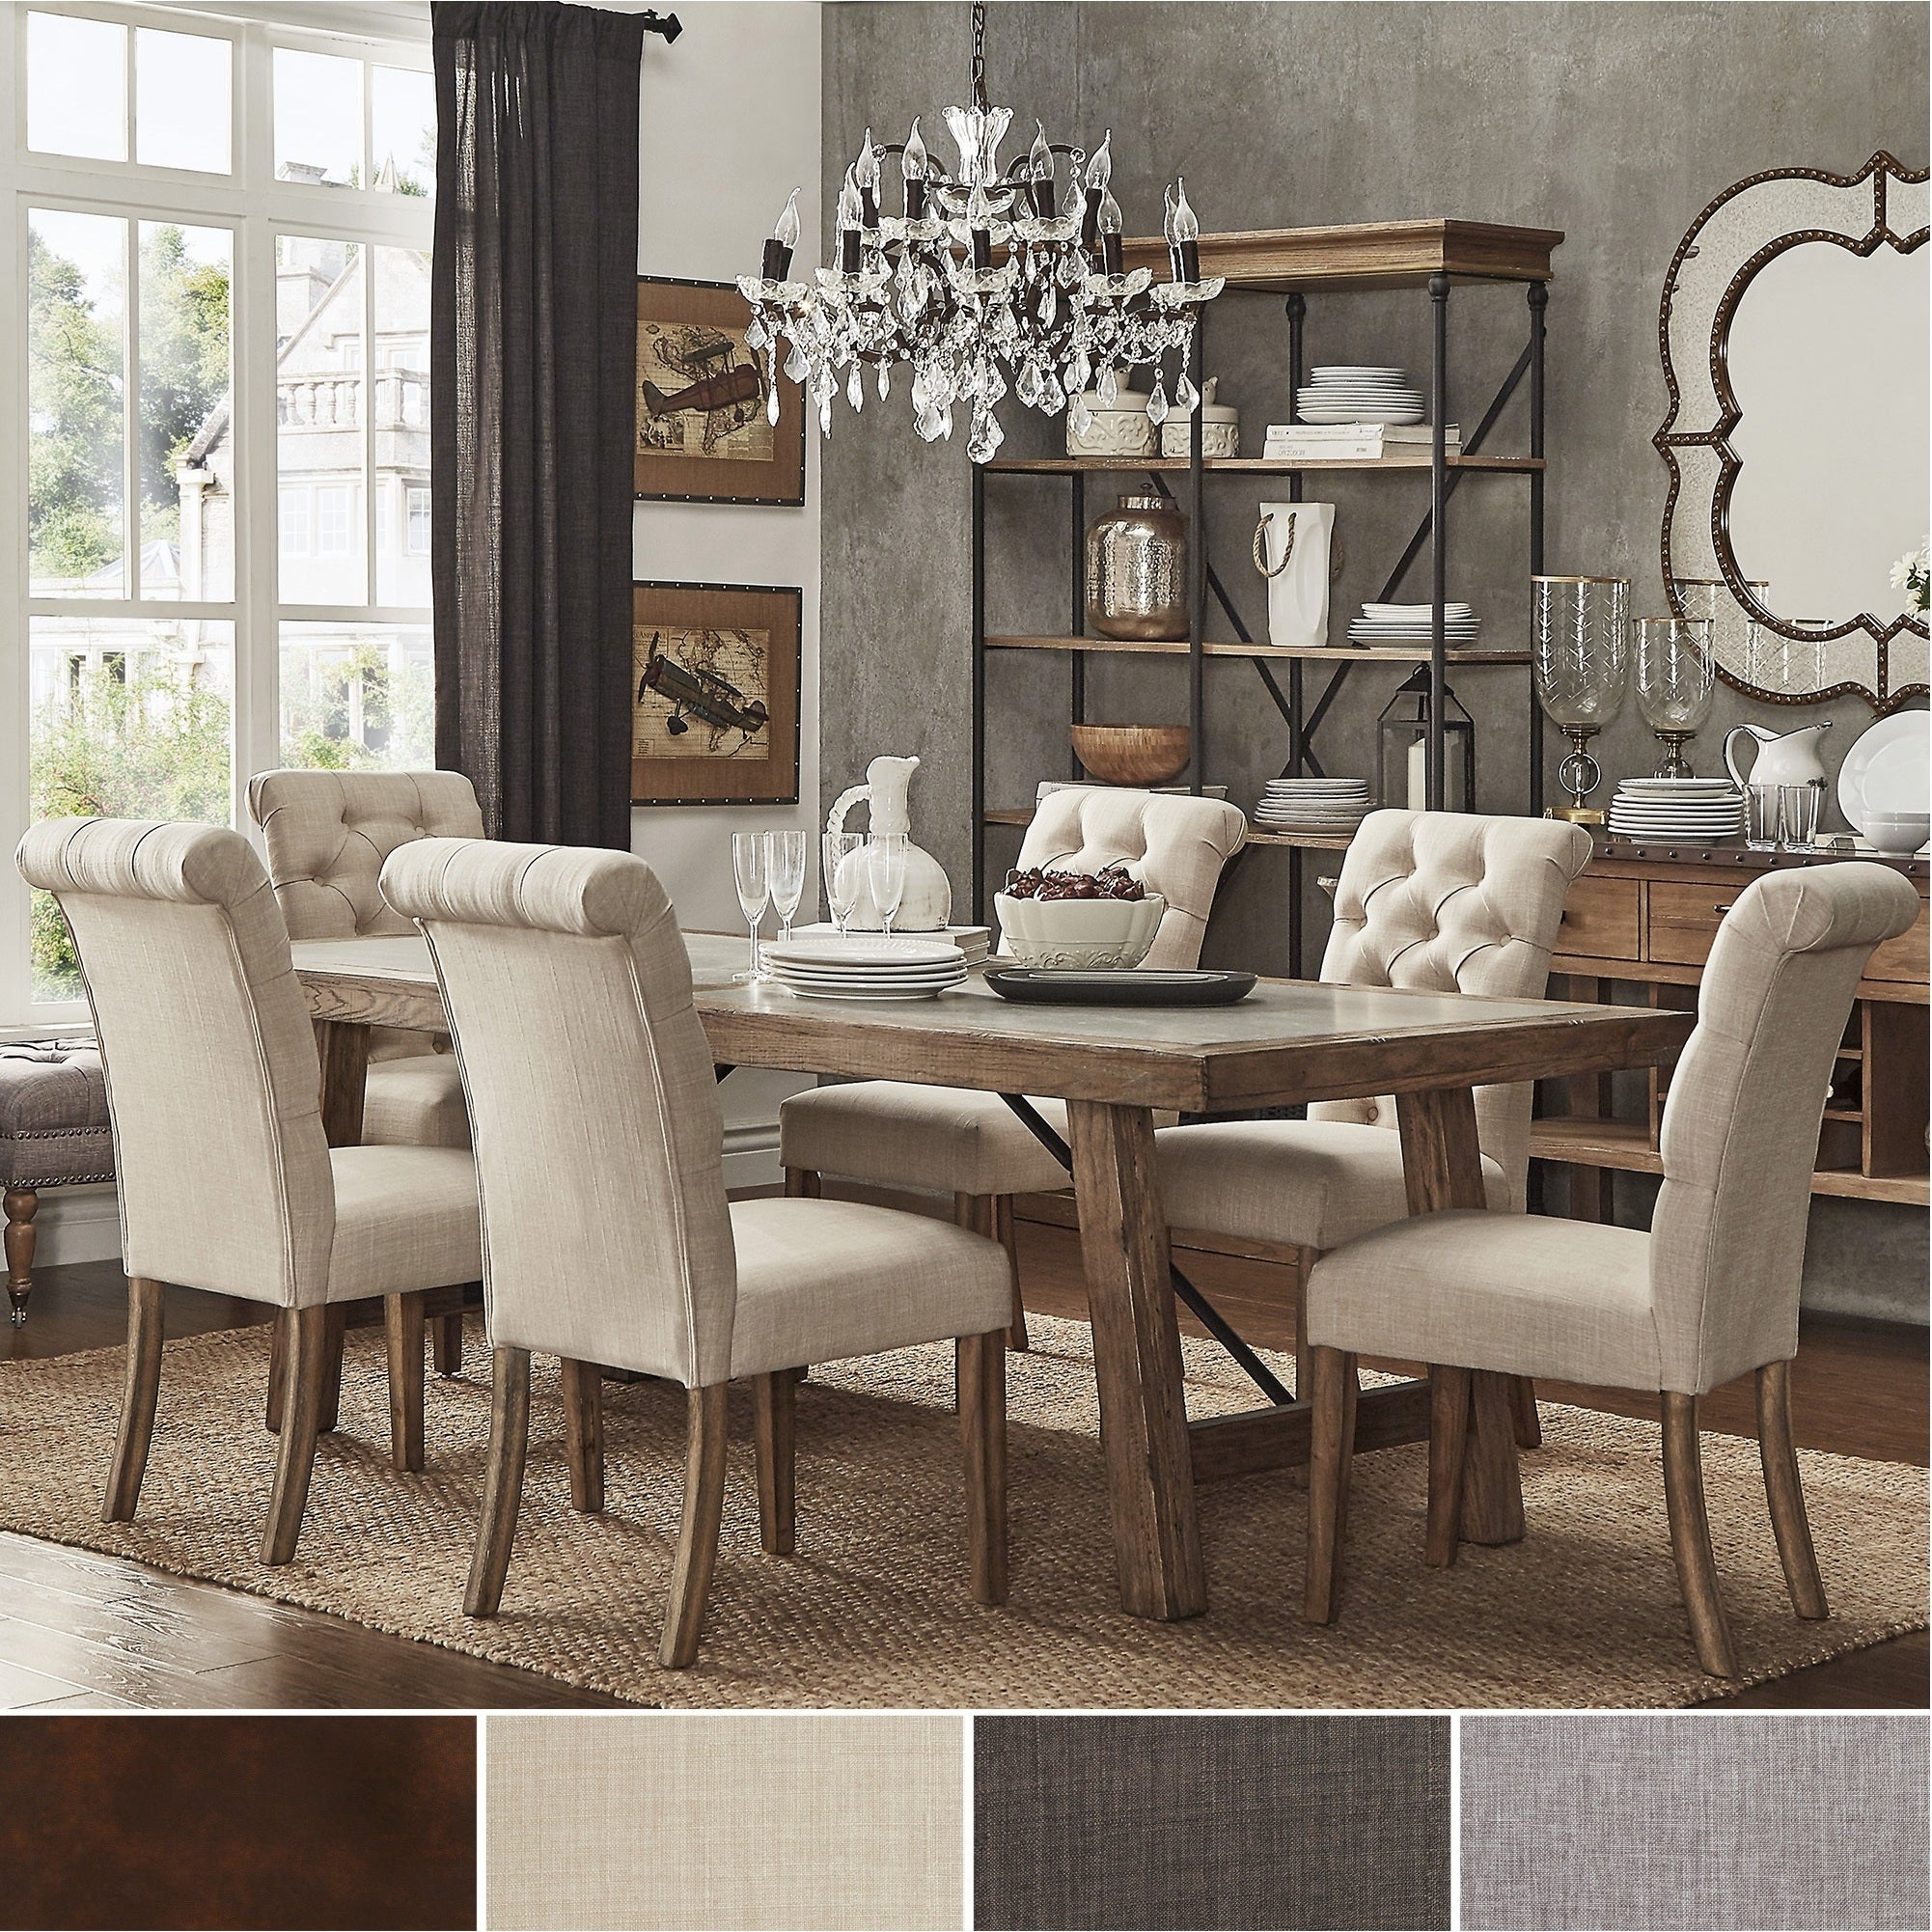 Buy 6 Piece Sets Kitchen & Dining Room Sets Online At Overstock With Regard To Recent Osterman 6 Piece Extendable Dining Sets (Set Of 6) (Image 7 of 20)